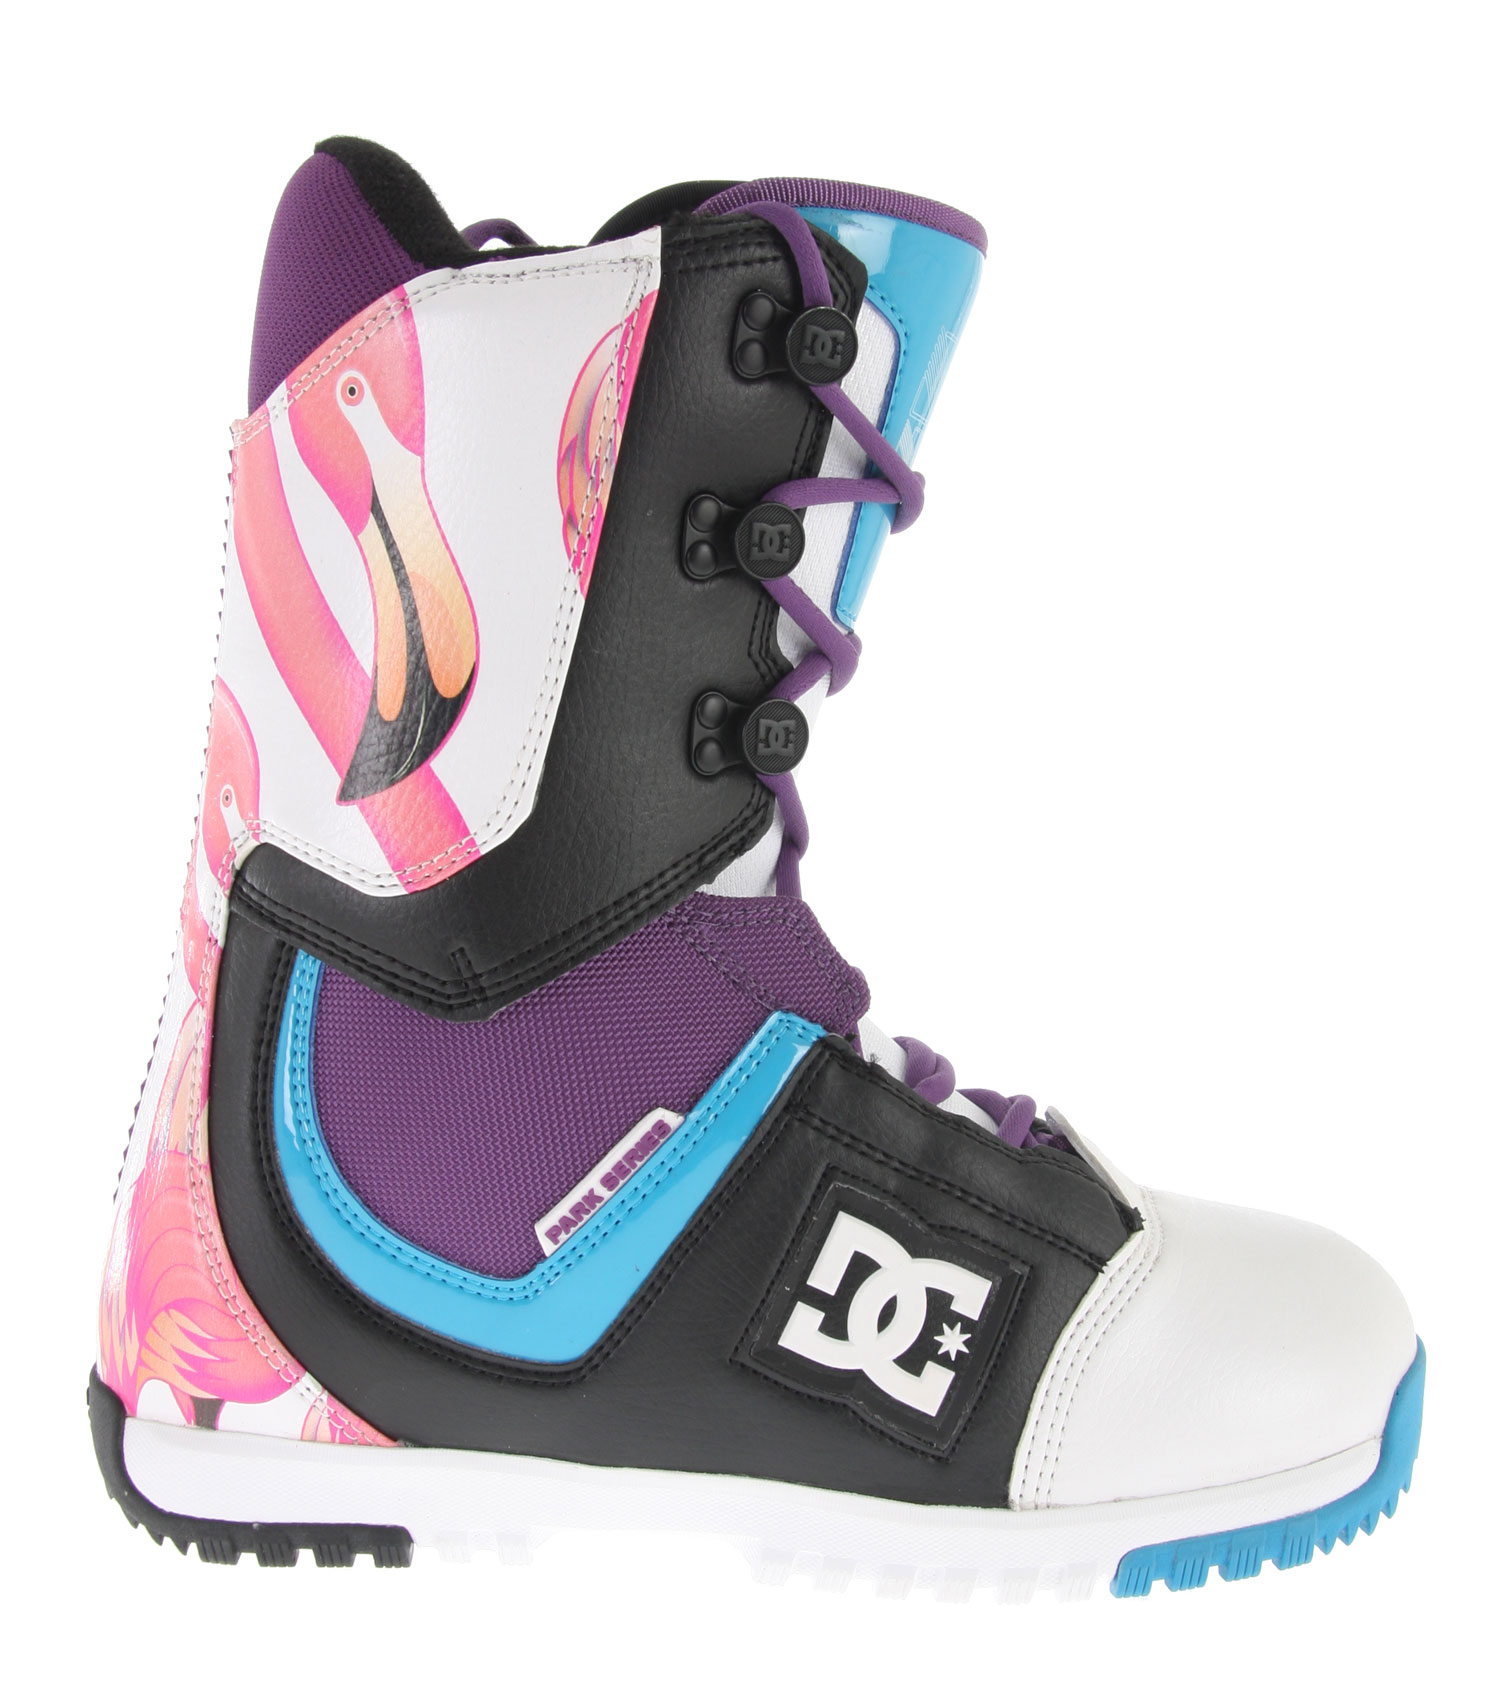 Snowboard These DC Park Snowboard Boots will keep you safe and secure with their modern fit technology. The Synthetic Leather & PU coated mesh will help keep you comfortable no matter how tough the terrain might be. These boots, simply put, provide all of the support you need when snowboarding. They also happen to be extremely stylish and sleek. People will be taking a second glance at these very cool snowboard boots. The DC Park Snowboard Boots will definitely give you a good bang for your buck!Key Features of the DC Park Snowboard Boots: Synthetic Leather & PU coated mesh Traditional Lace Direct Power Lacing 3D Tongue Articulation Welded Backstay Unilite Outsole Park Bravo Liner Flex Rating 6 - $119.95